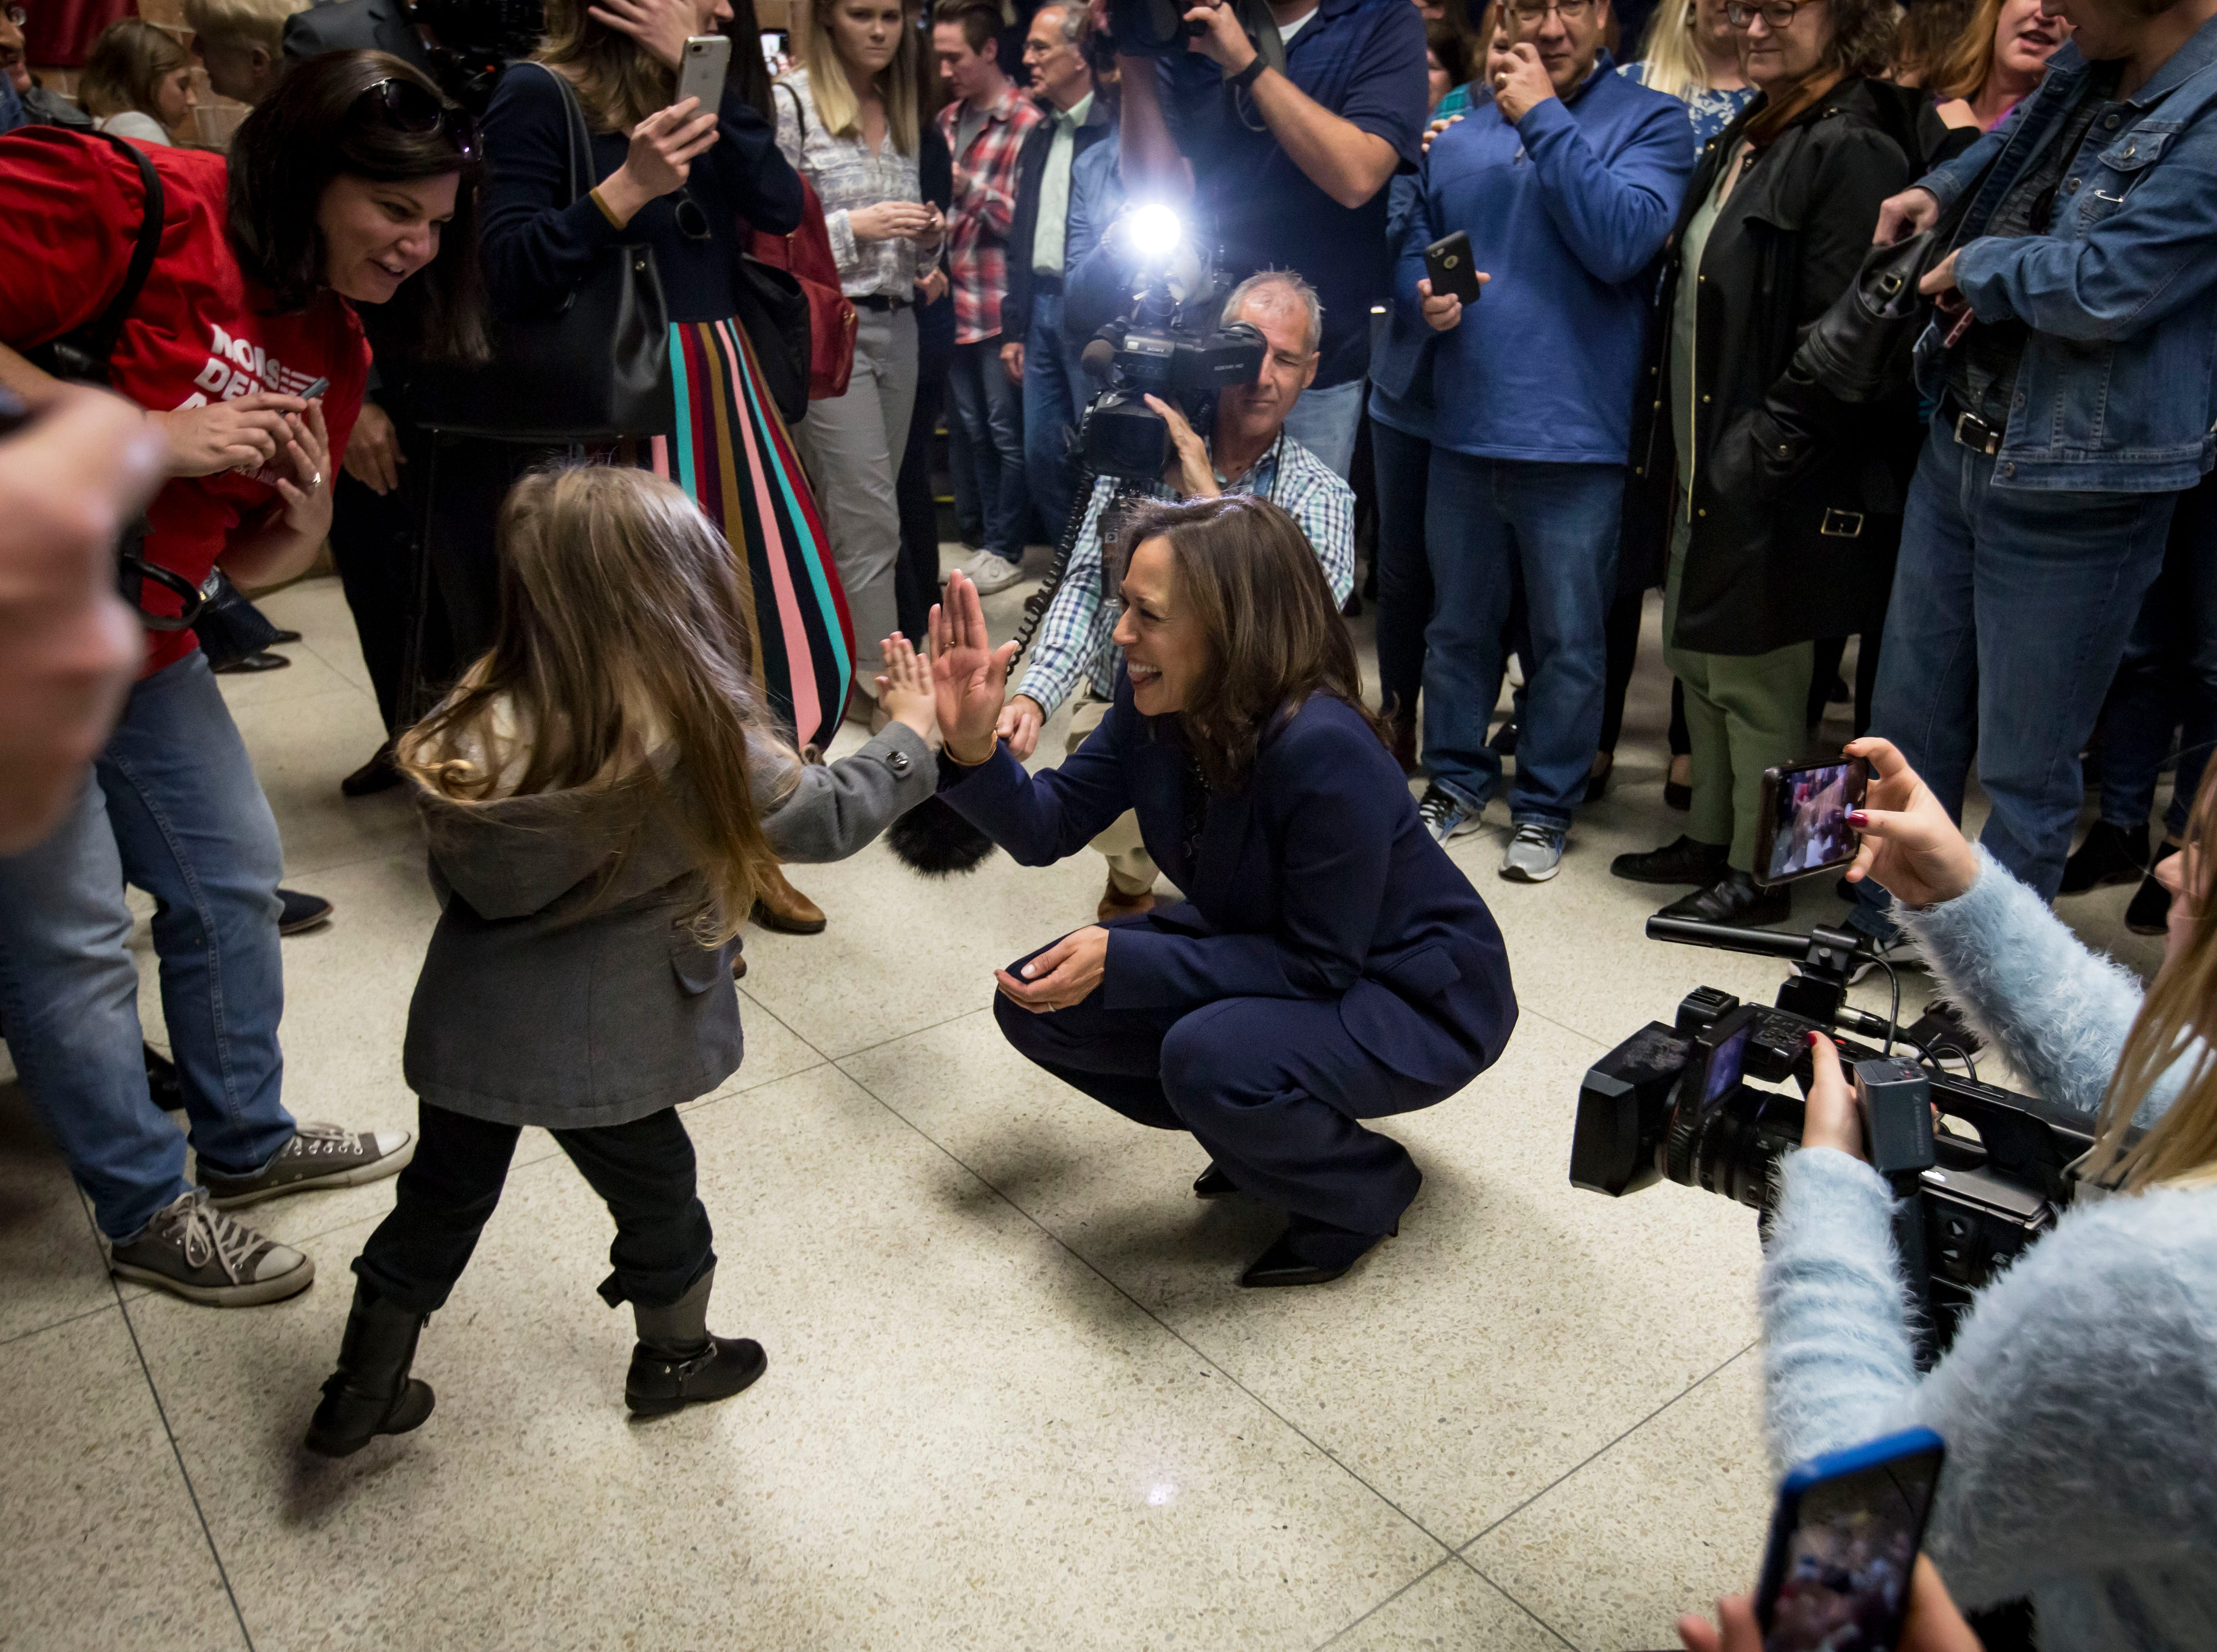 Democratic Senator Kamala Harris of California high fives Jessica Mayland, 3, of Maxwell after a DMACC Early Vote rally  Monday, Oct. 22, 2018, in Ankeny, Iowa. She appeared with Congressional candidate Cindy Axne, State Senate candidate Amber Gustafson and Iowa House candidate Heather Maston.